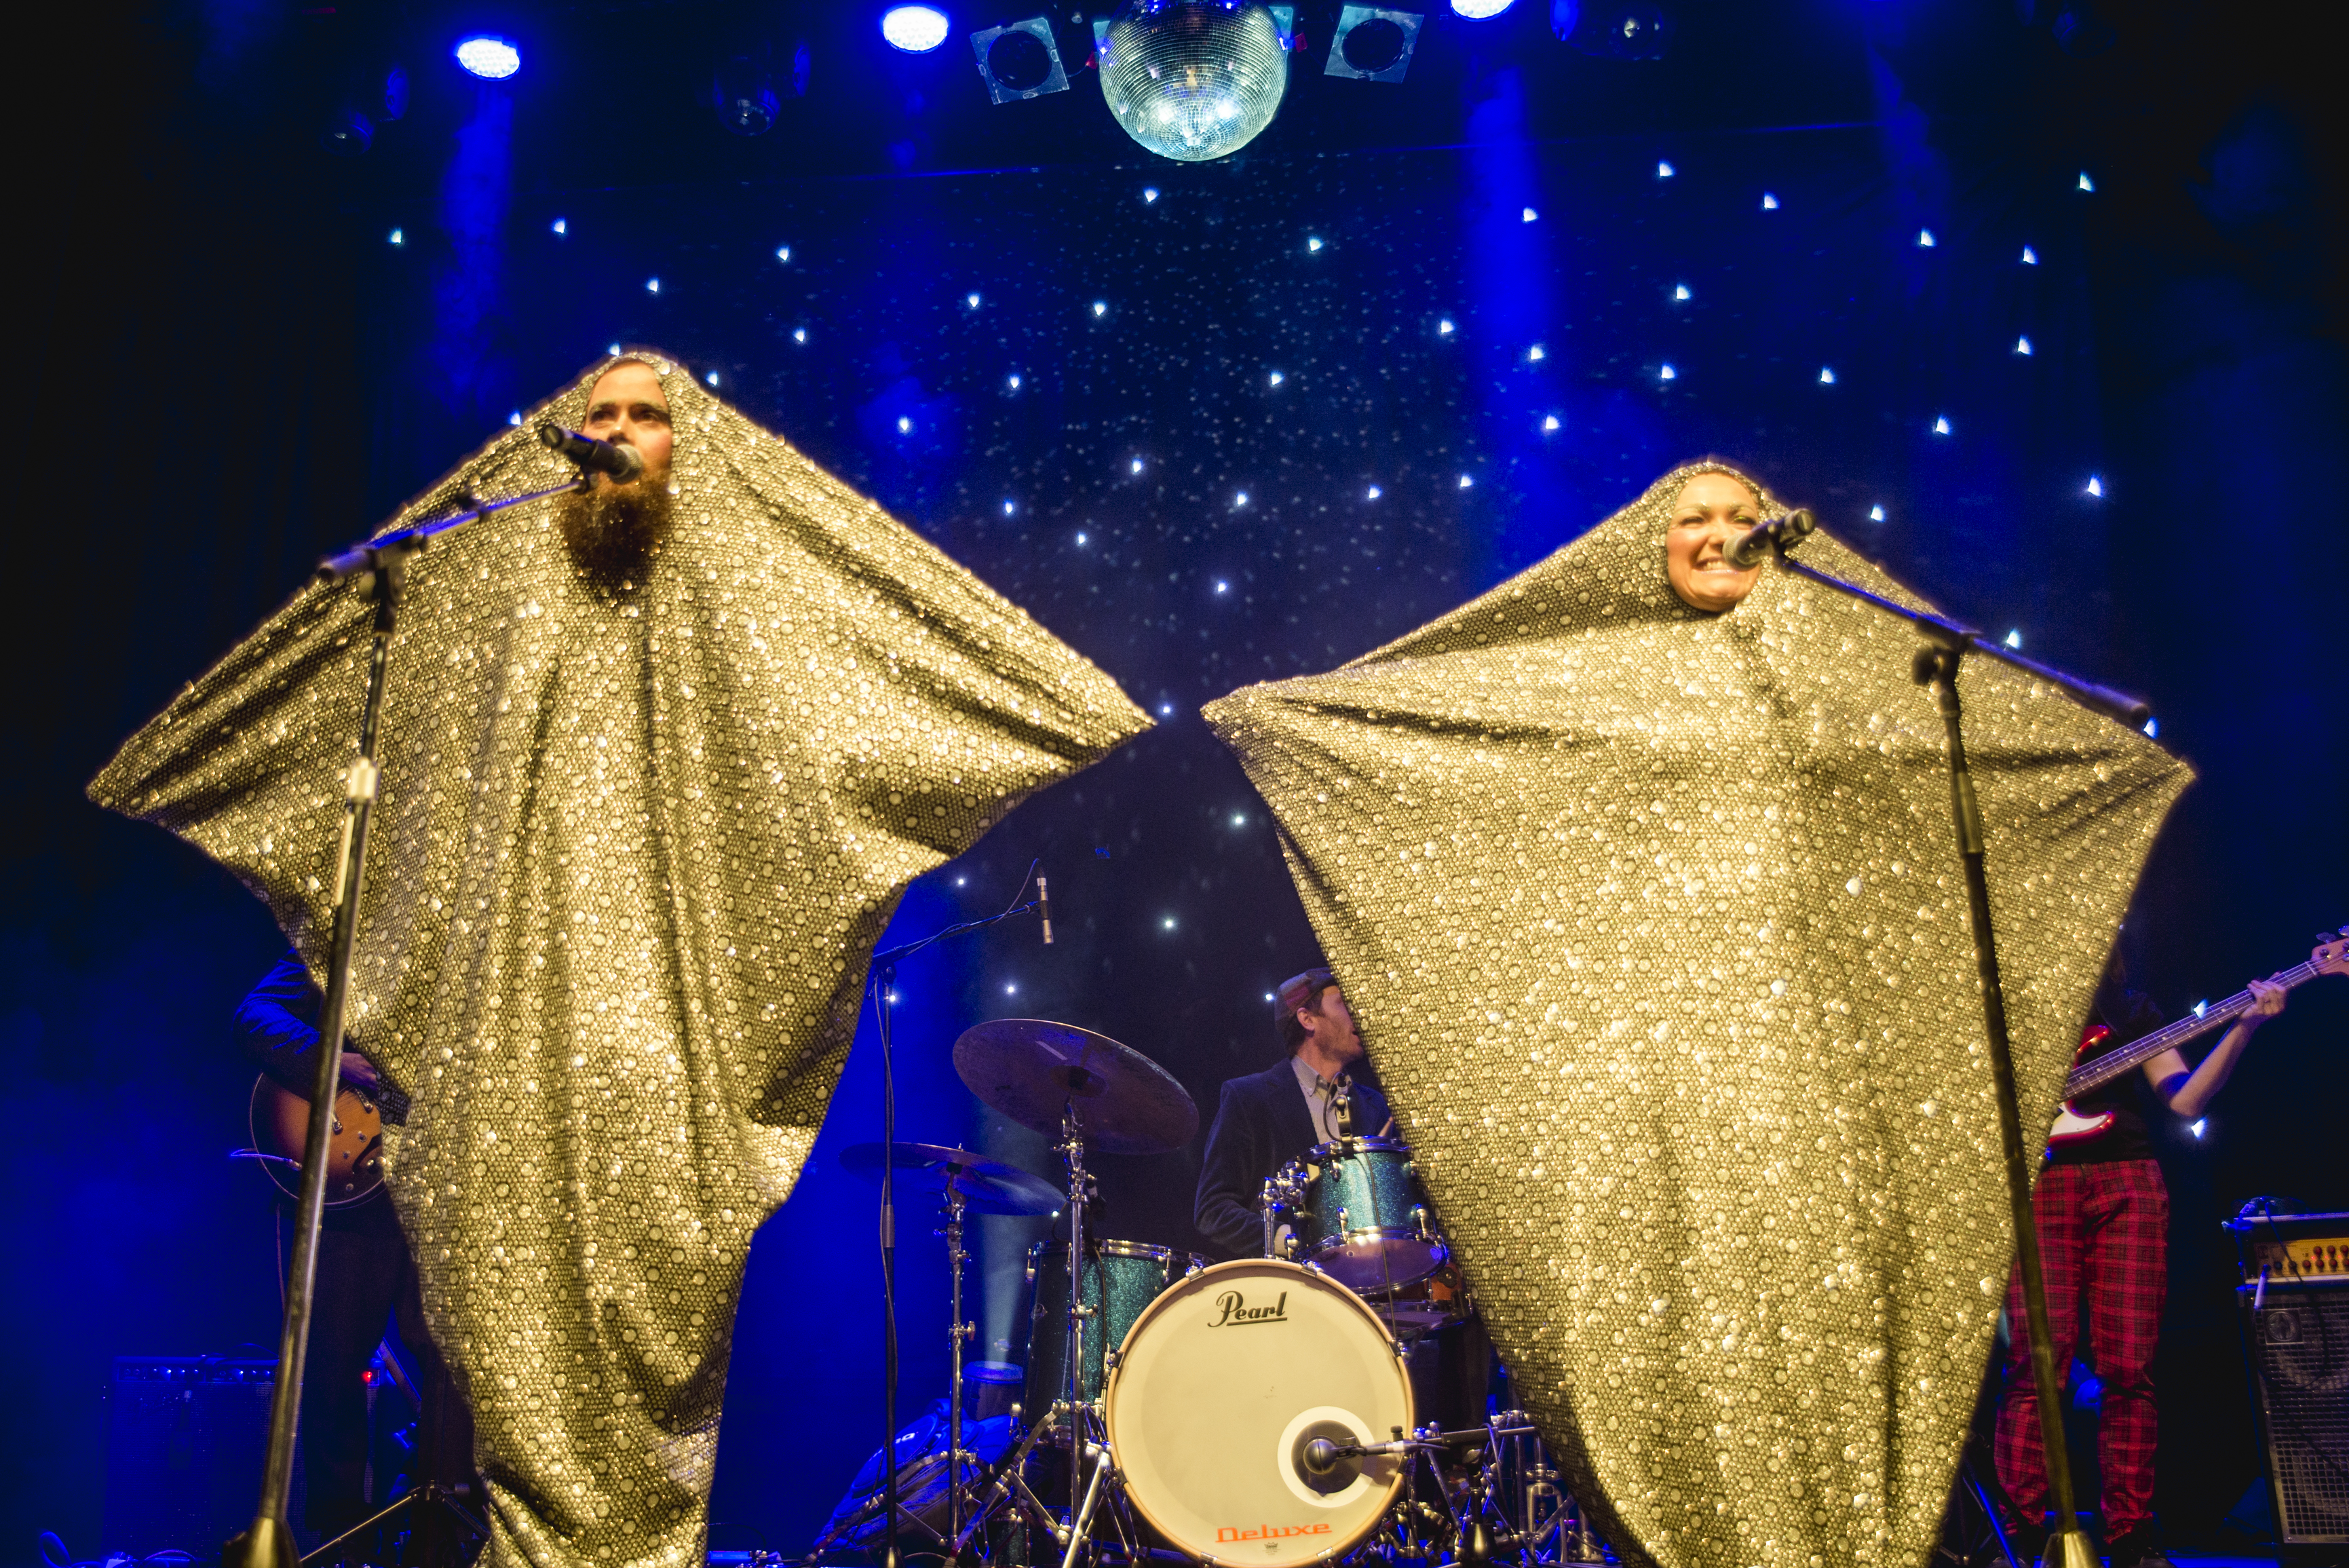 Two performers dressing as stars in golden costumes, each standing behind a microphone on the stage